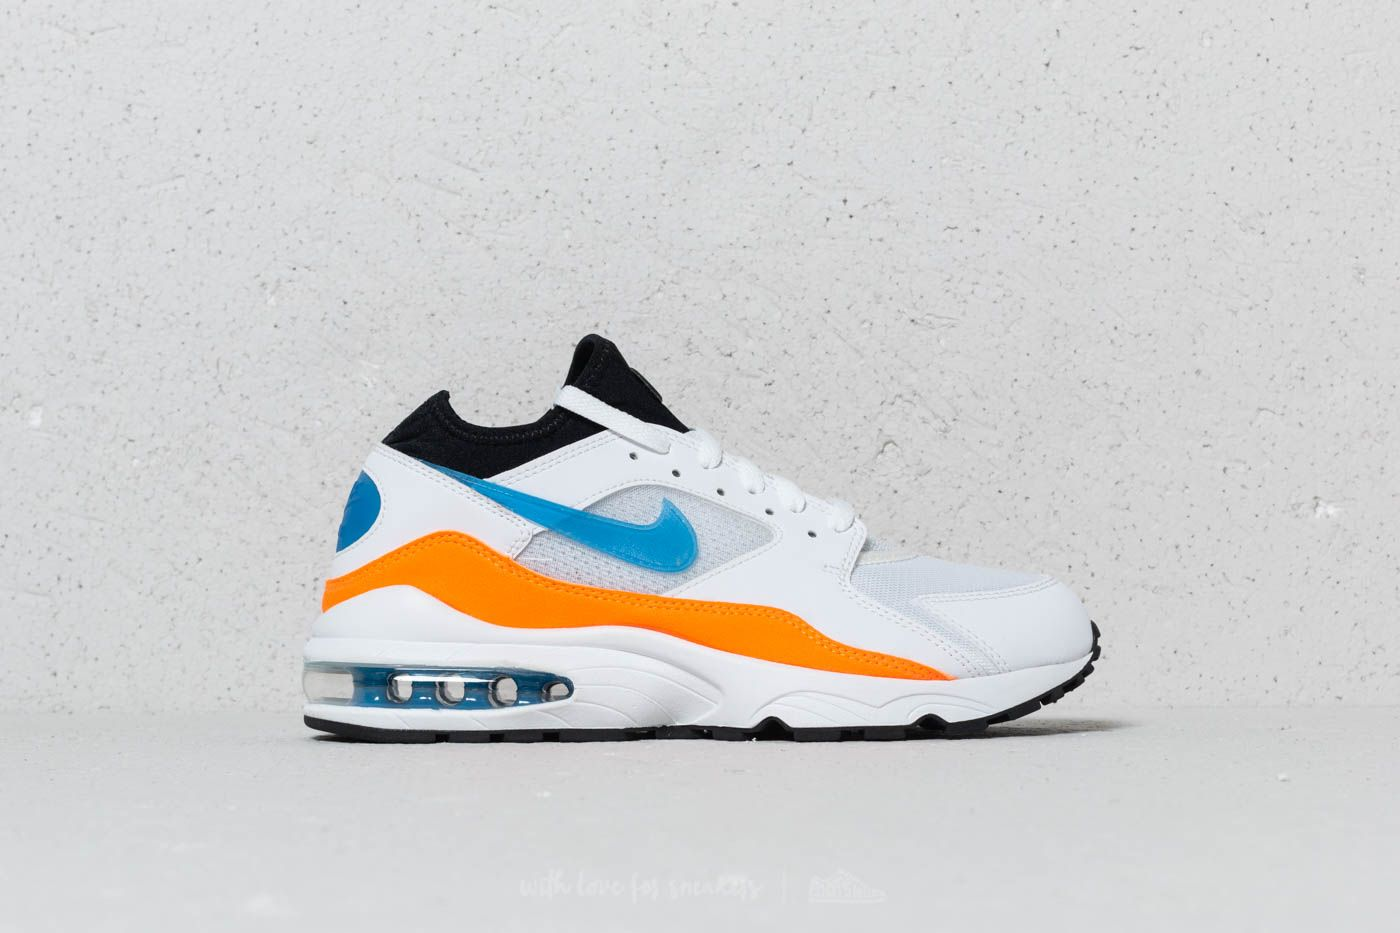 da7e901a62 Nike Air Max 93 White/ Blue Nebula-Total Orange at a great price 143